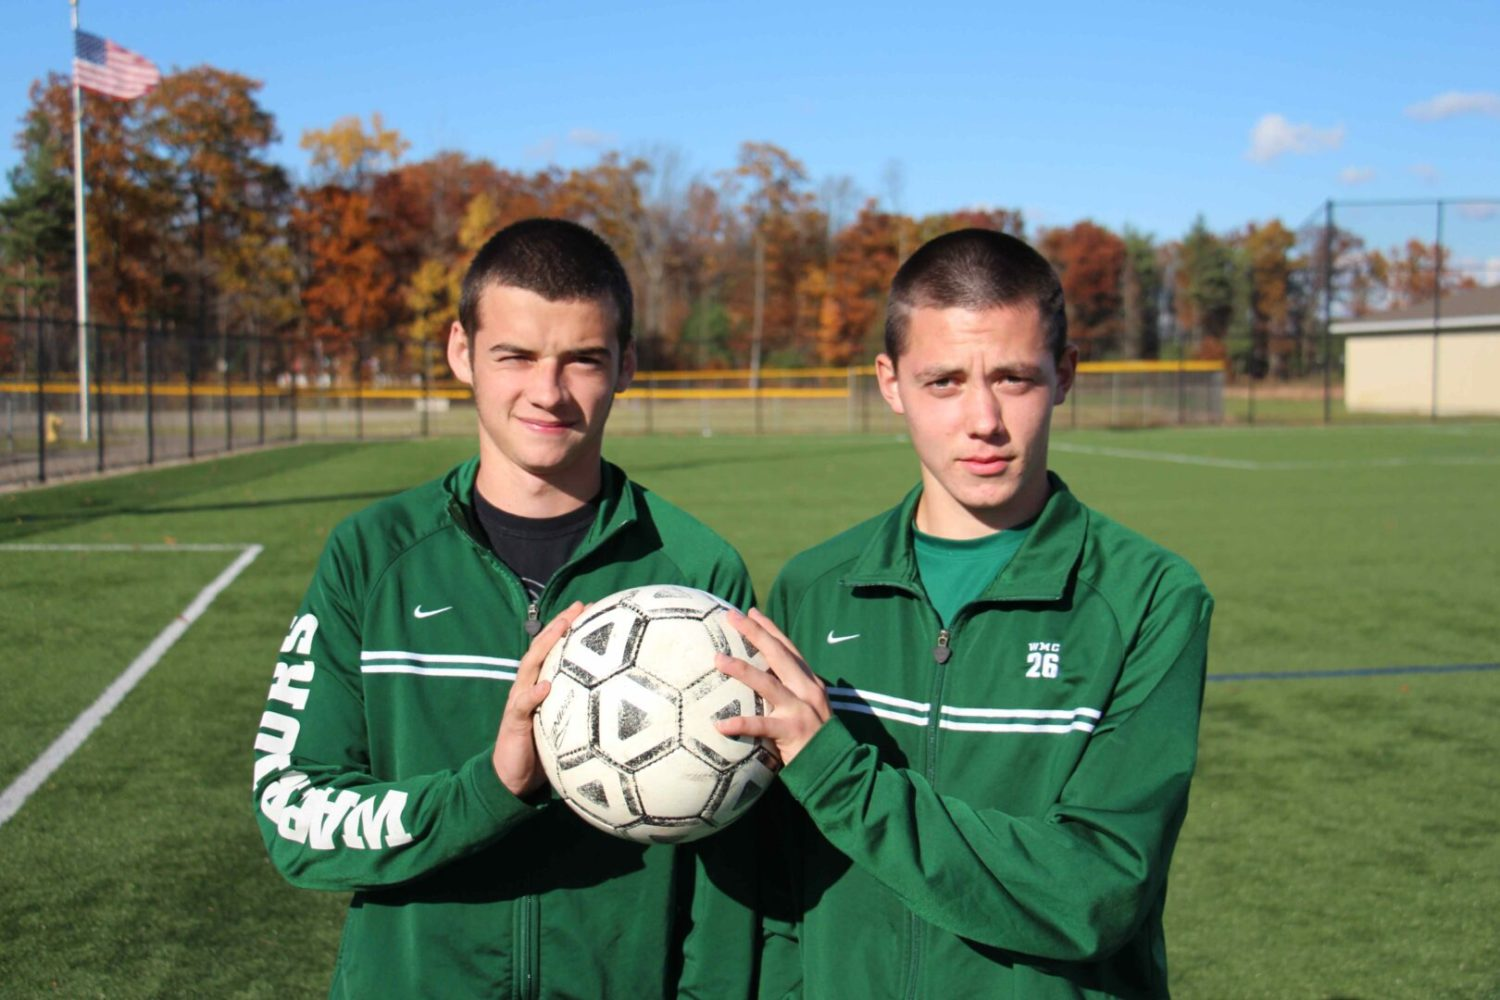 WMC soccer seniors Cook, VanderPloeg eager for Wednesday's state semifinals and another shot at a title